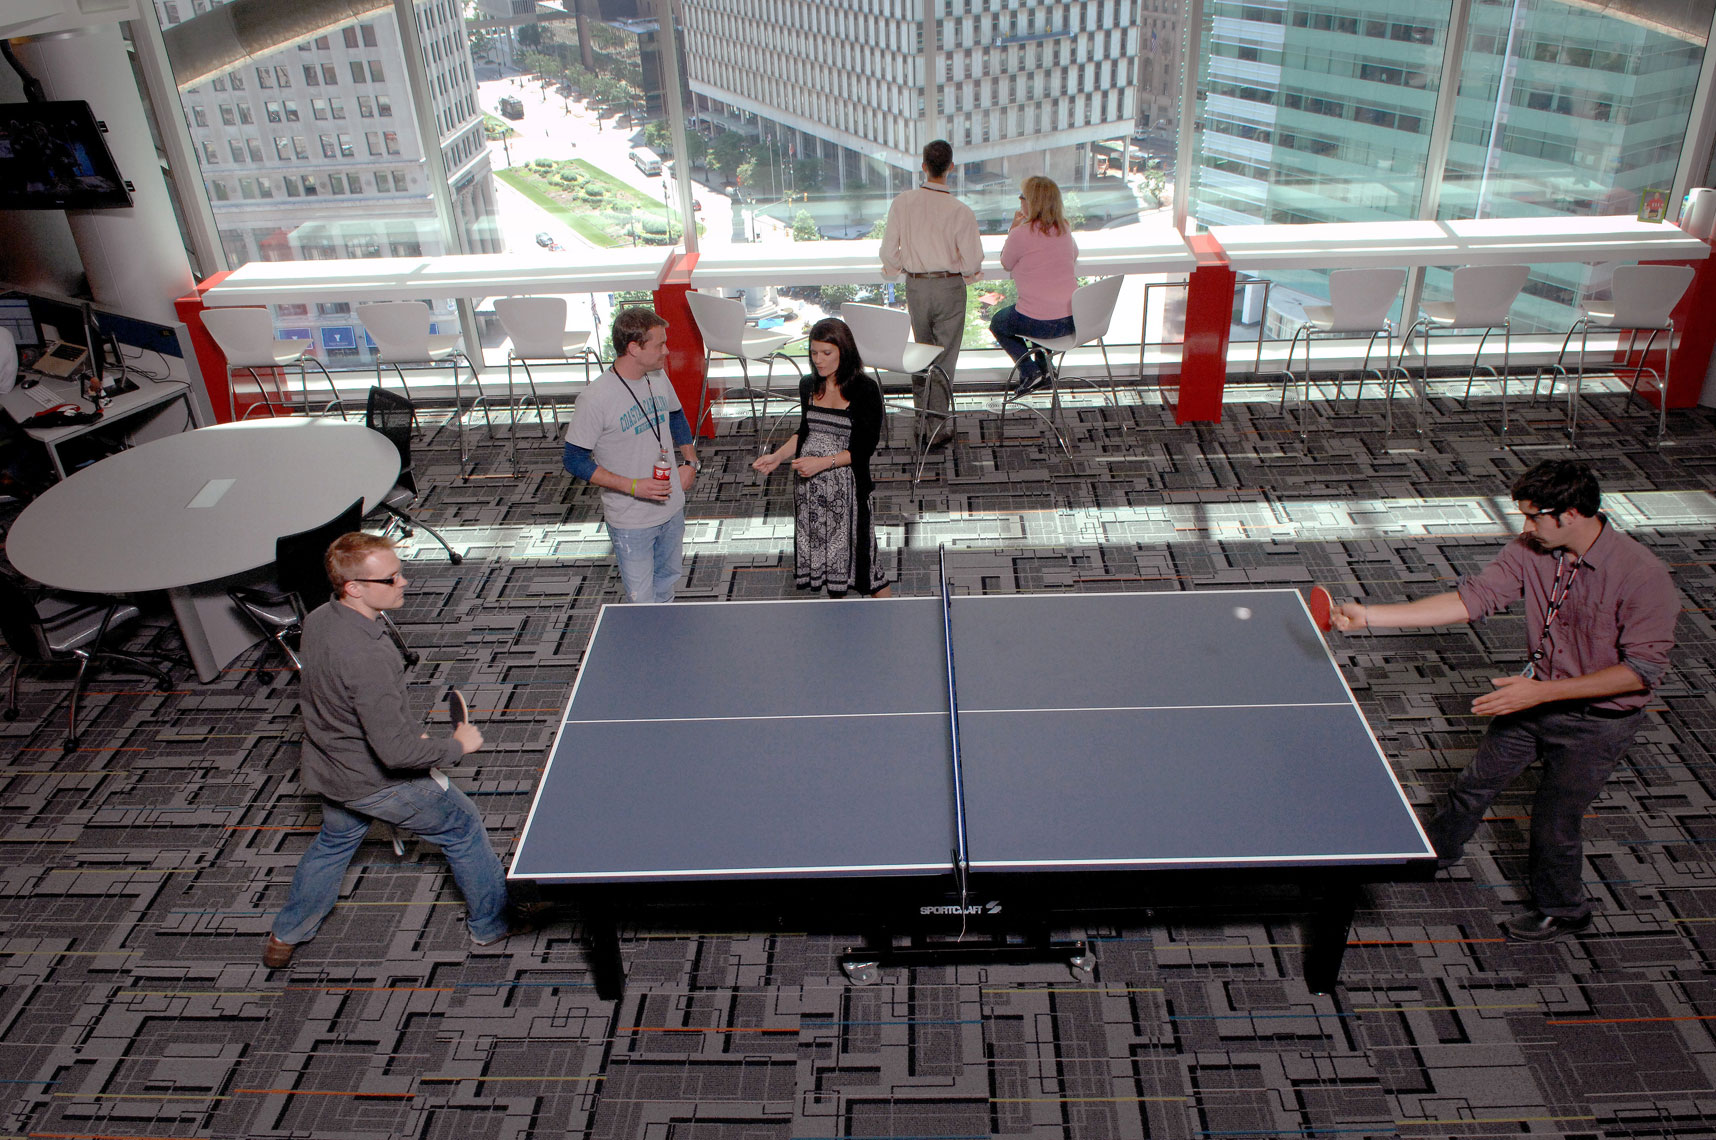 Compuware-Ping-Pong_edited